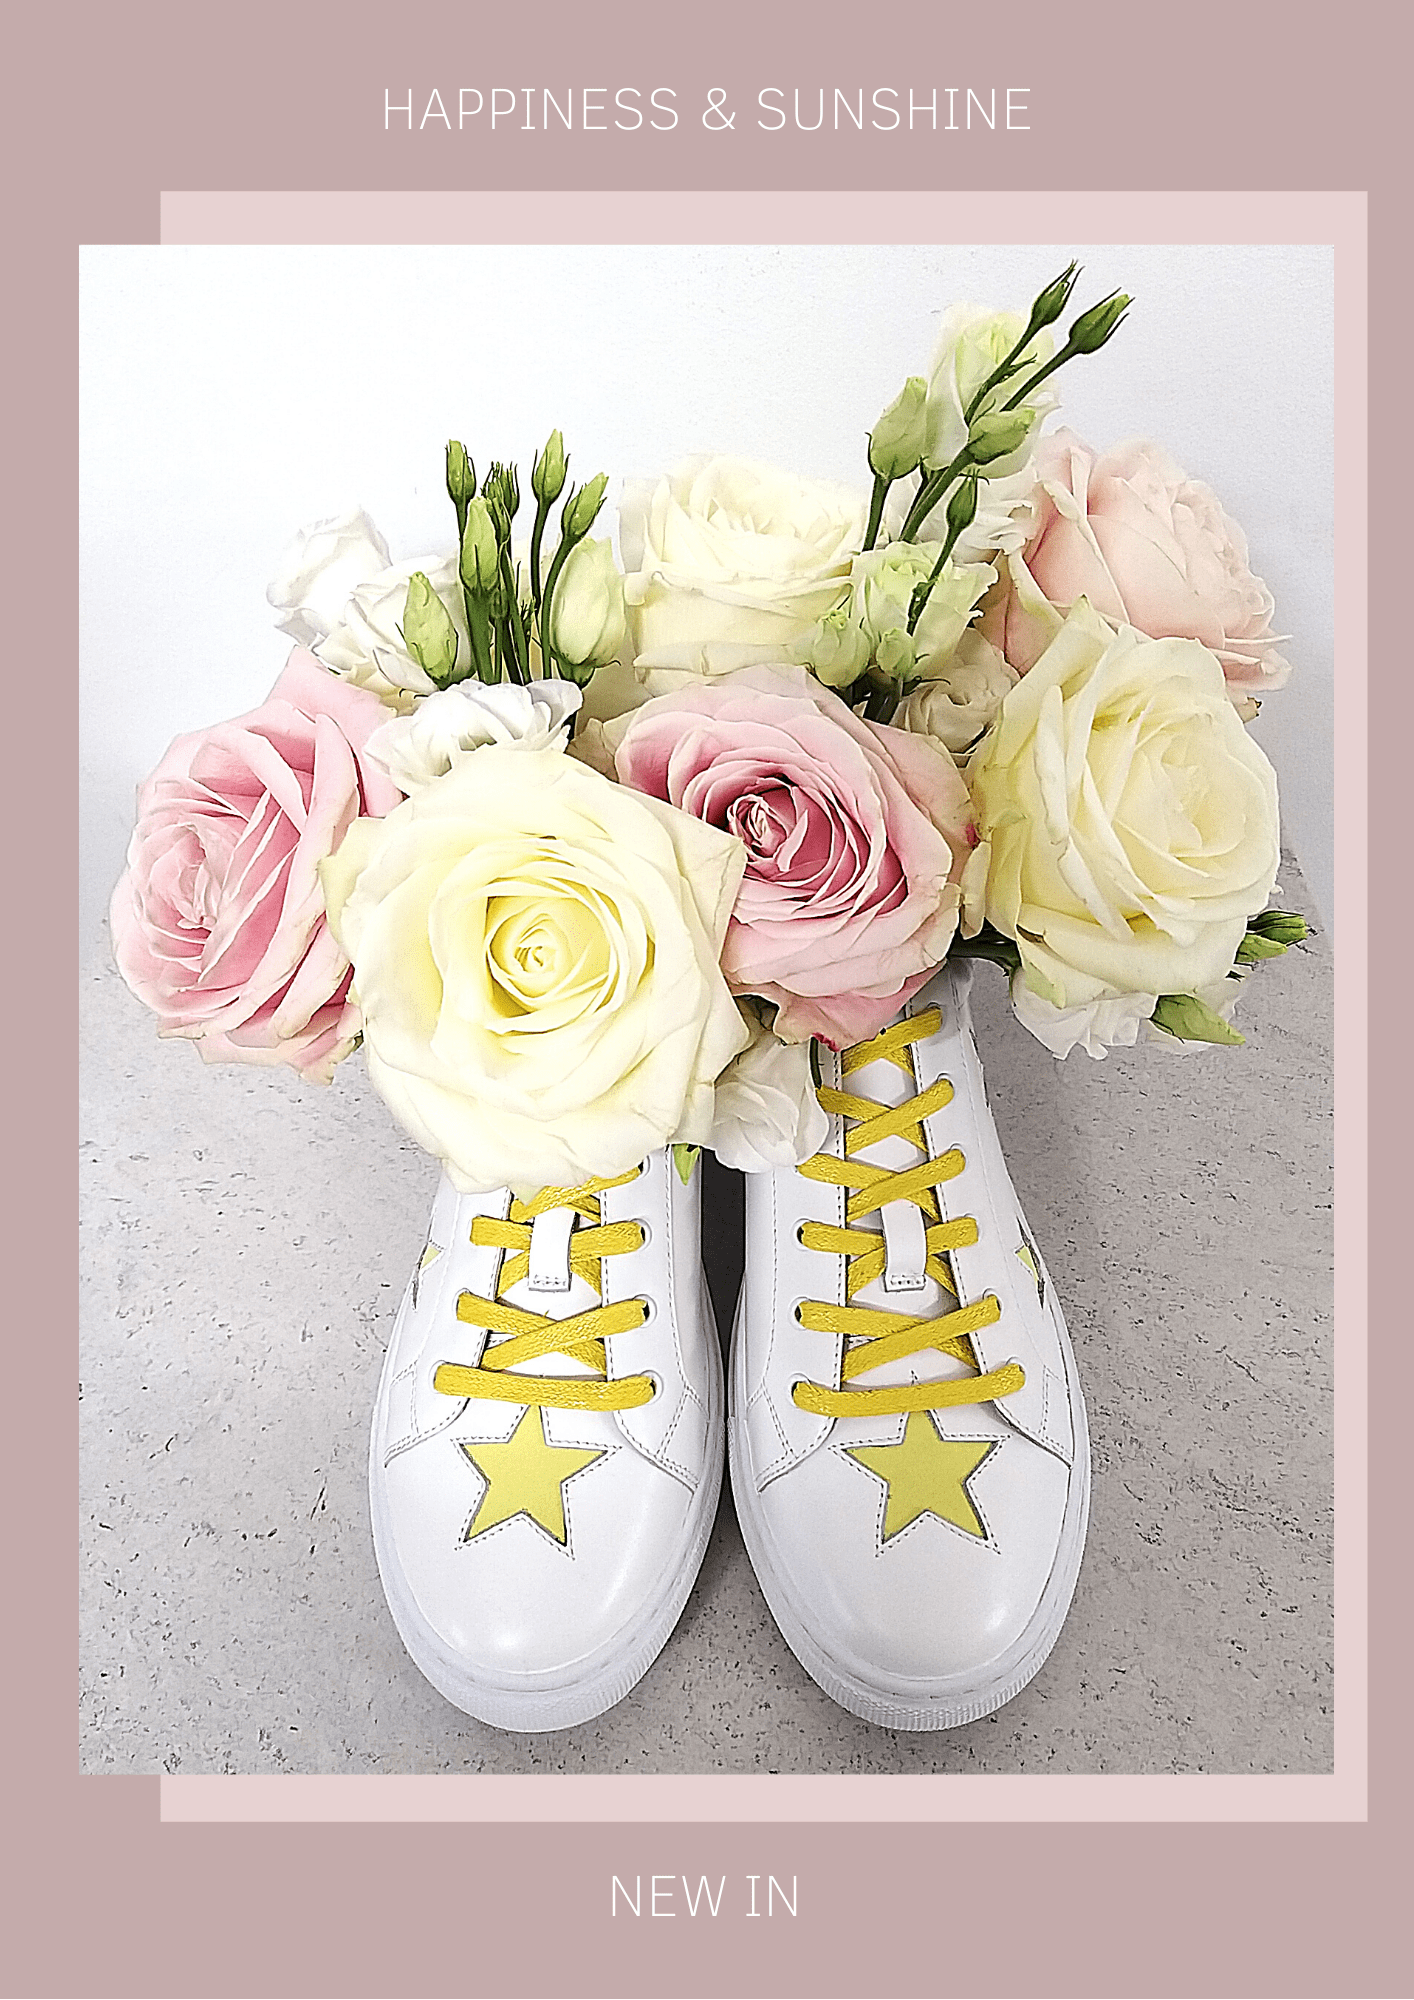 New In Hoxton Yellow Stars Trainers - sunshine and happiness for your feet